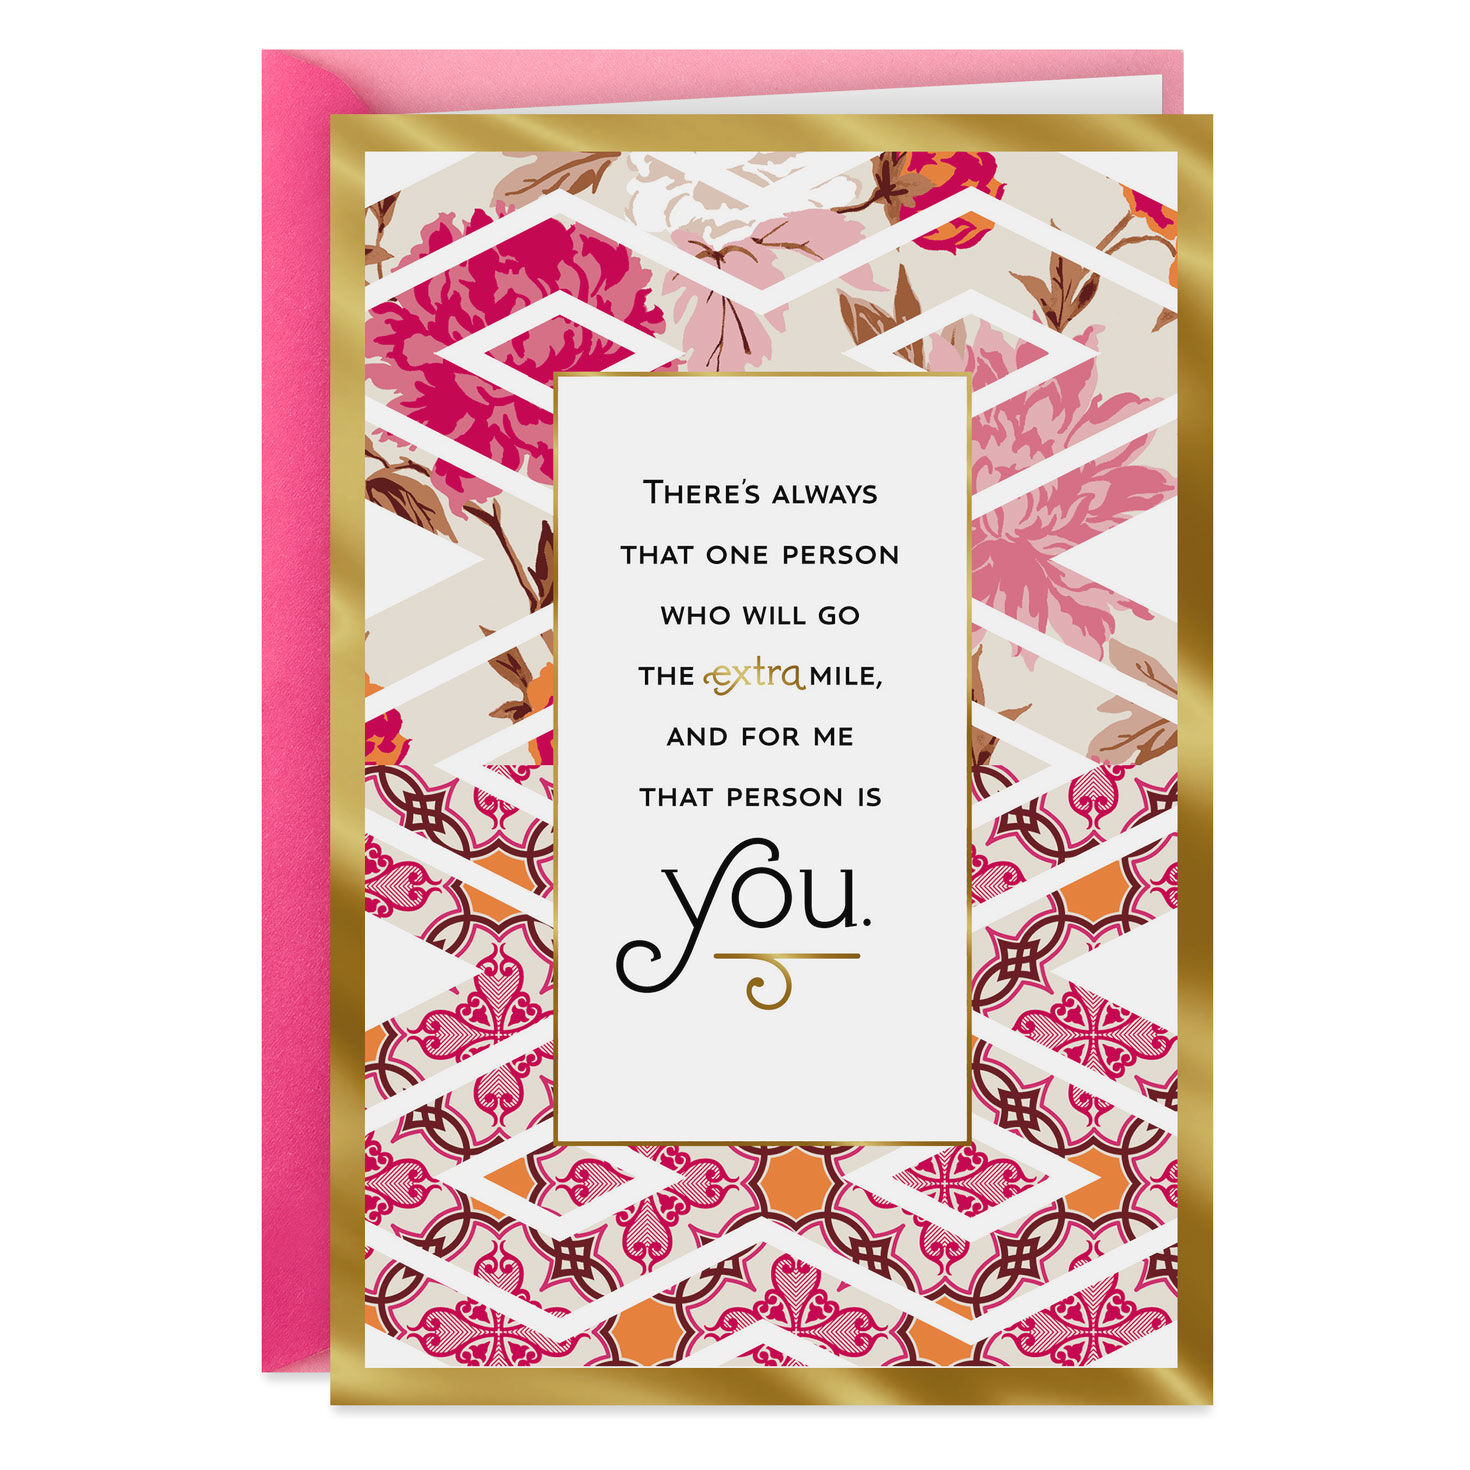 graphic regarding Thanks for Going the Extra Mile Printable known as Appealing Butterfly Thank On your own Card - Greeting Playing cards - Hallmark